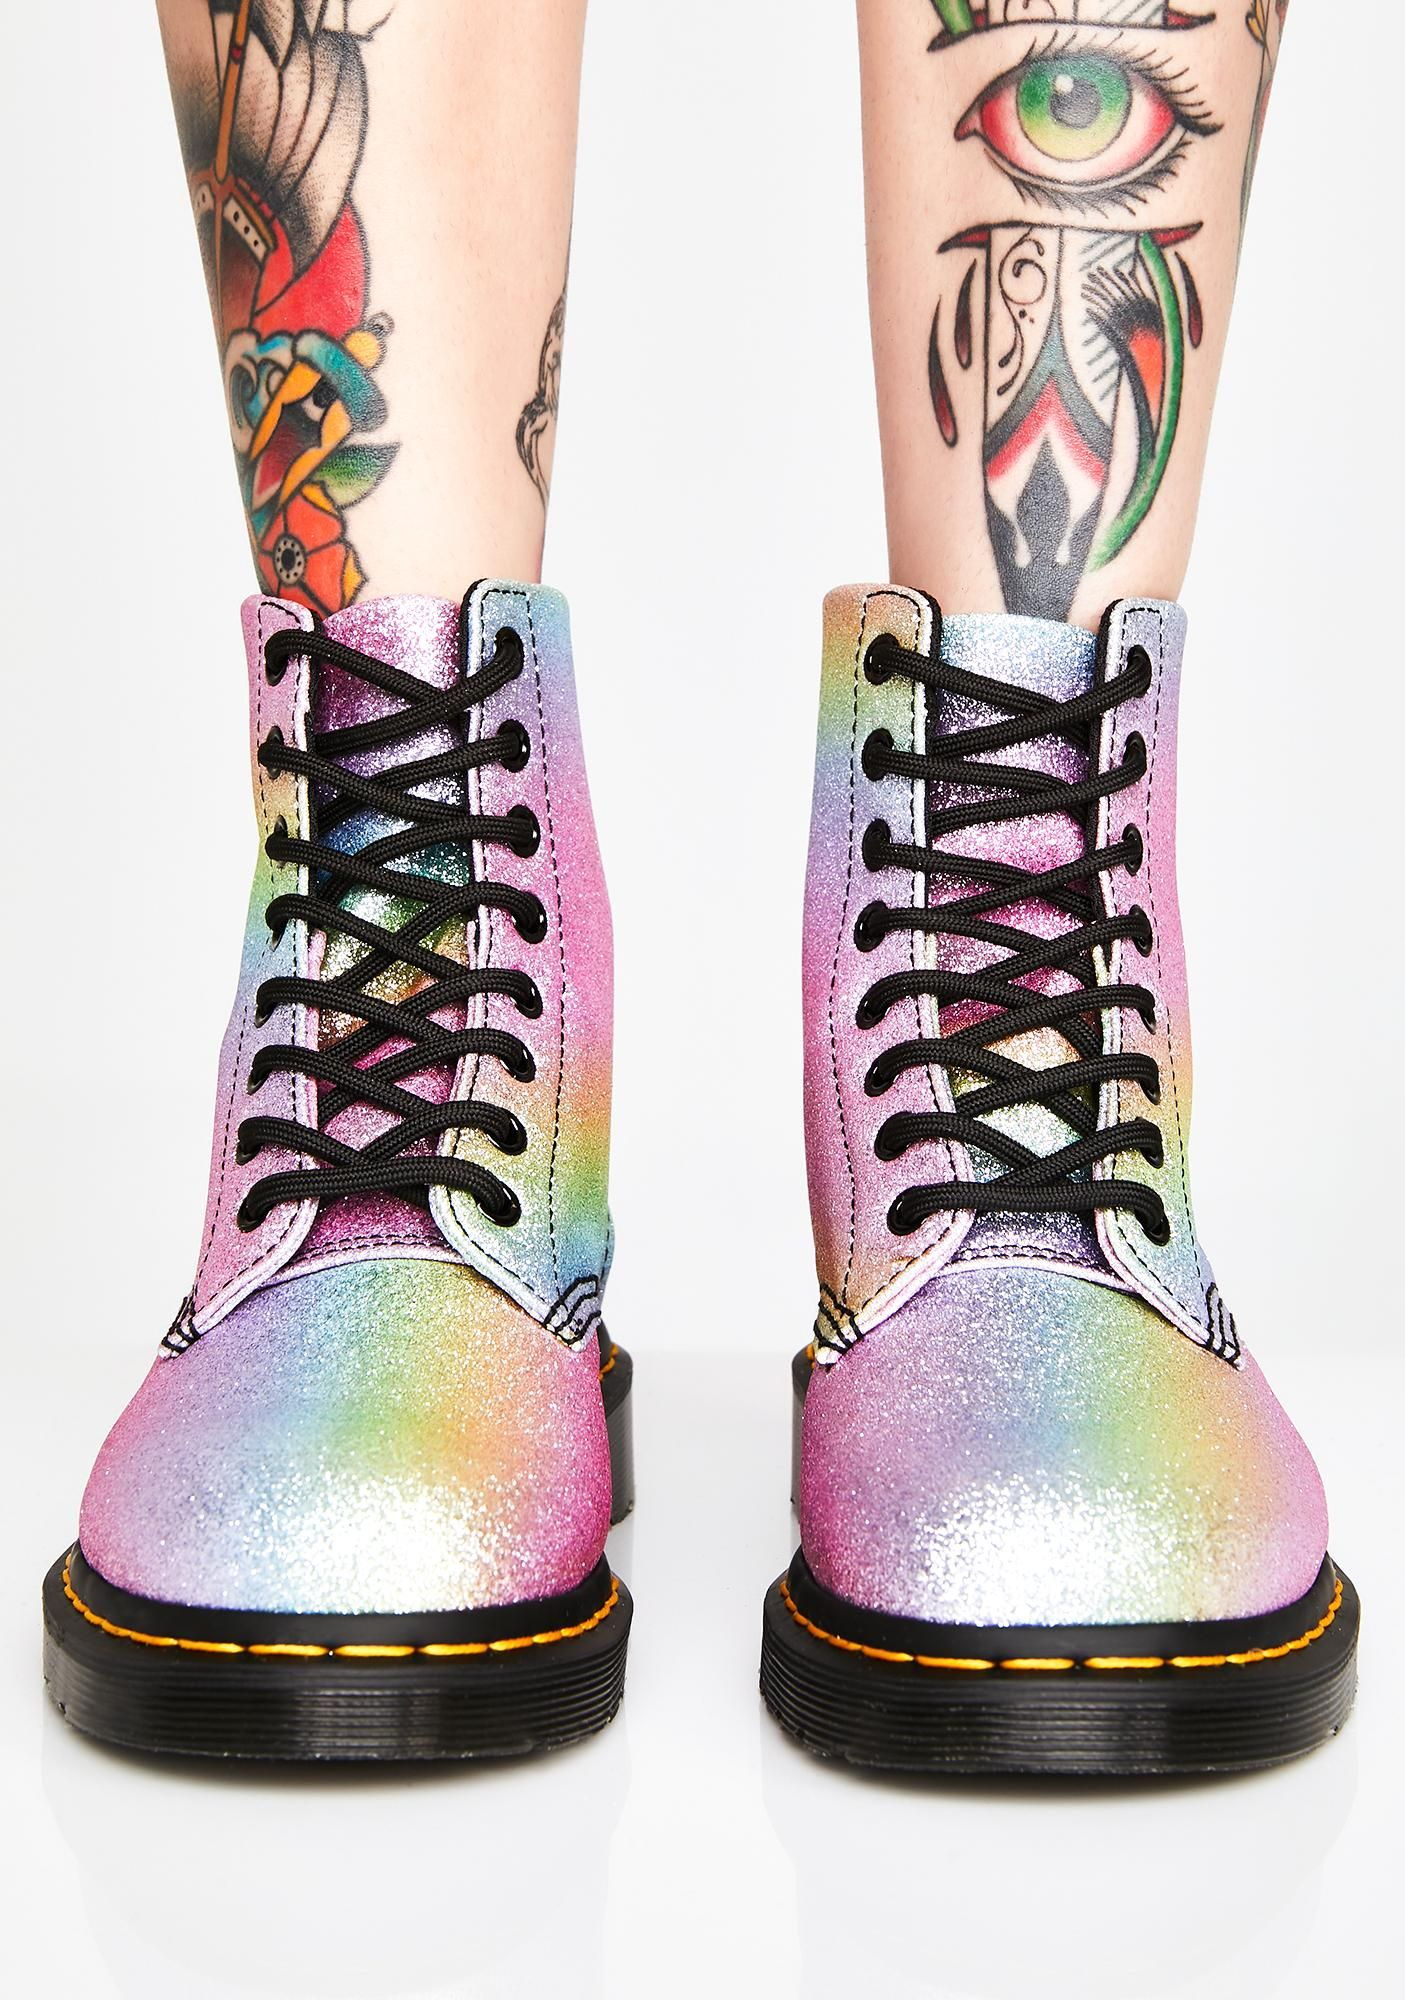 Rainbow Glitter Pascal Boots | Boots